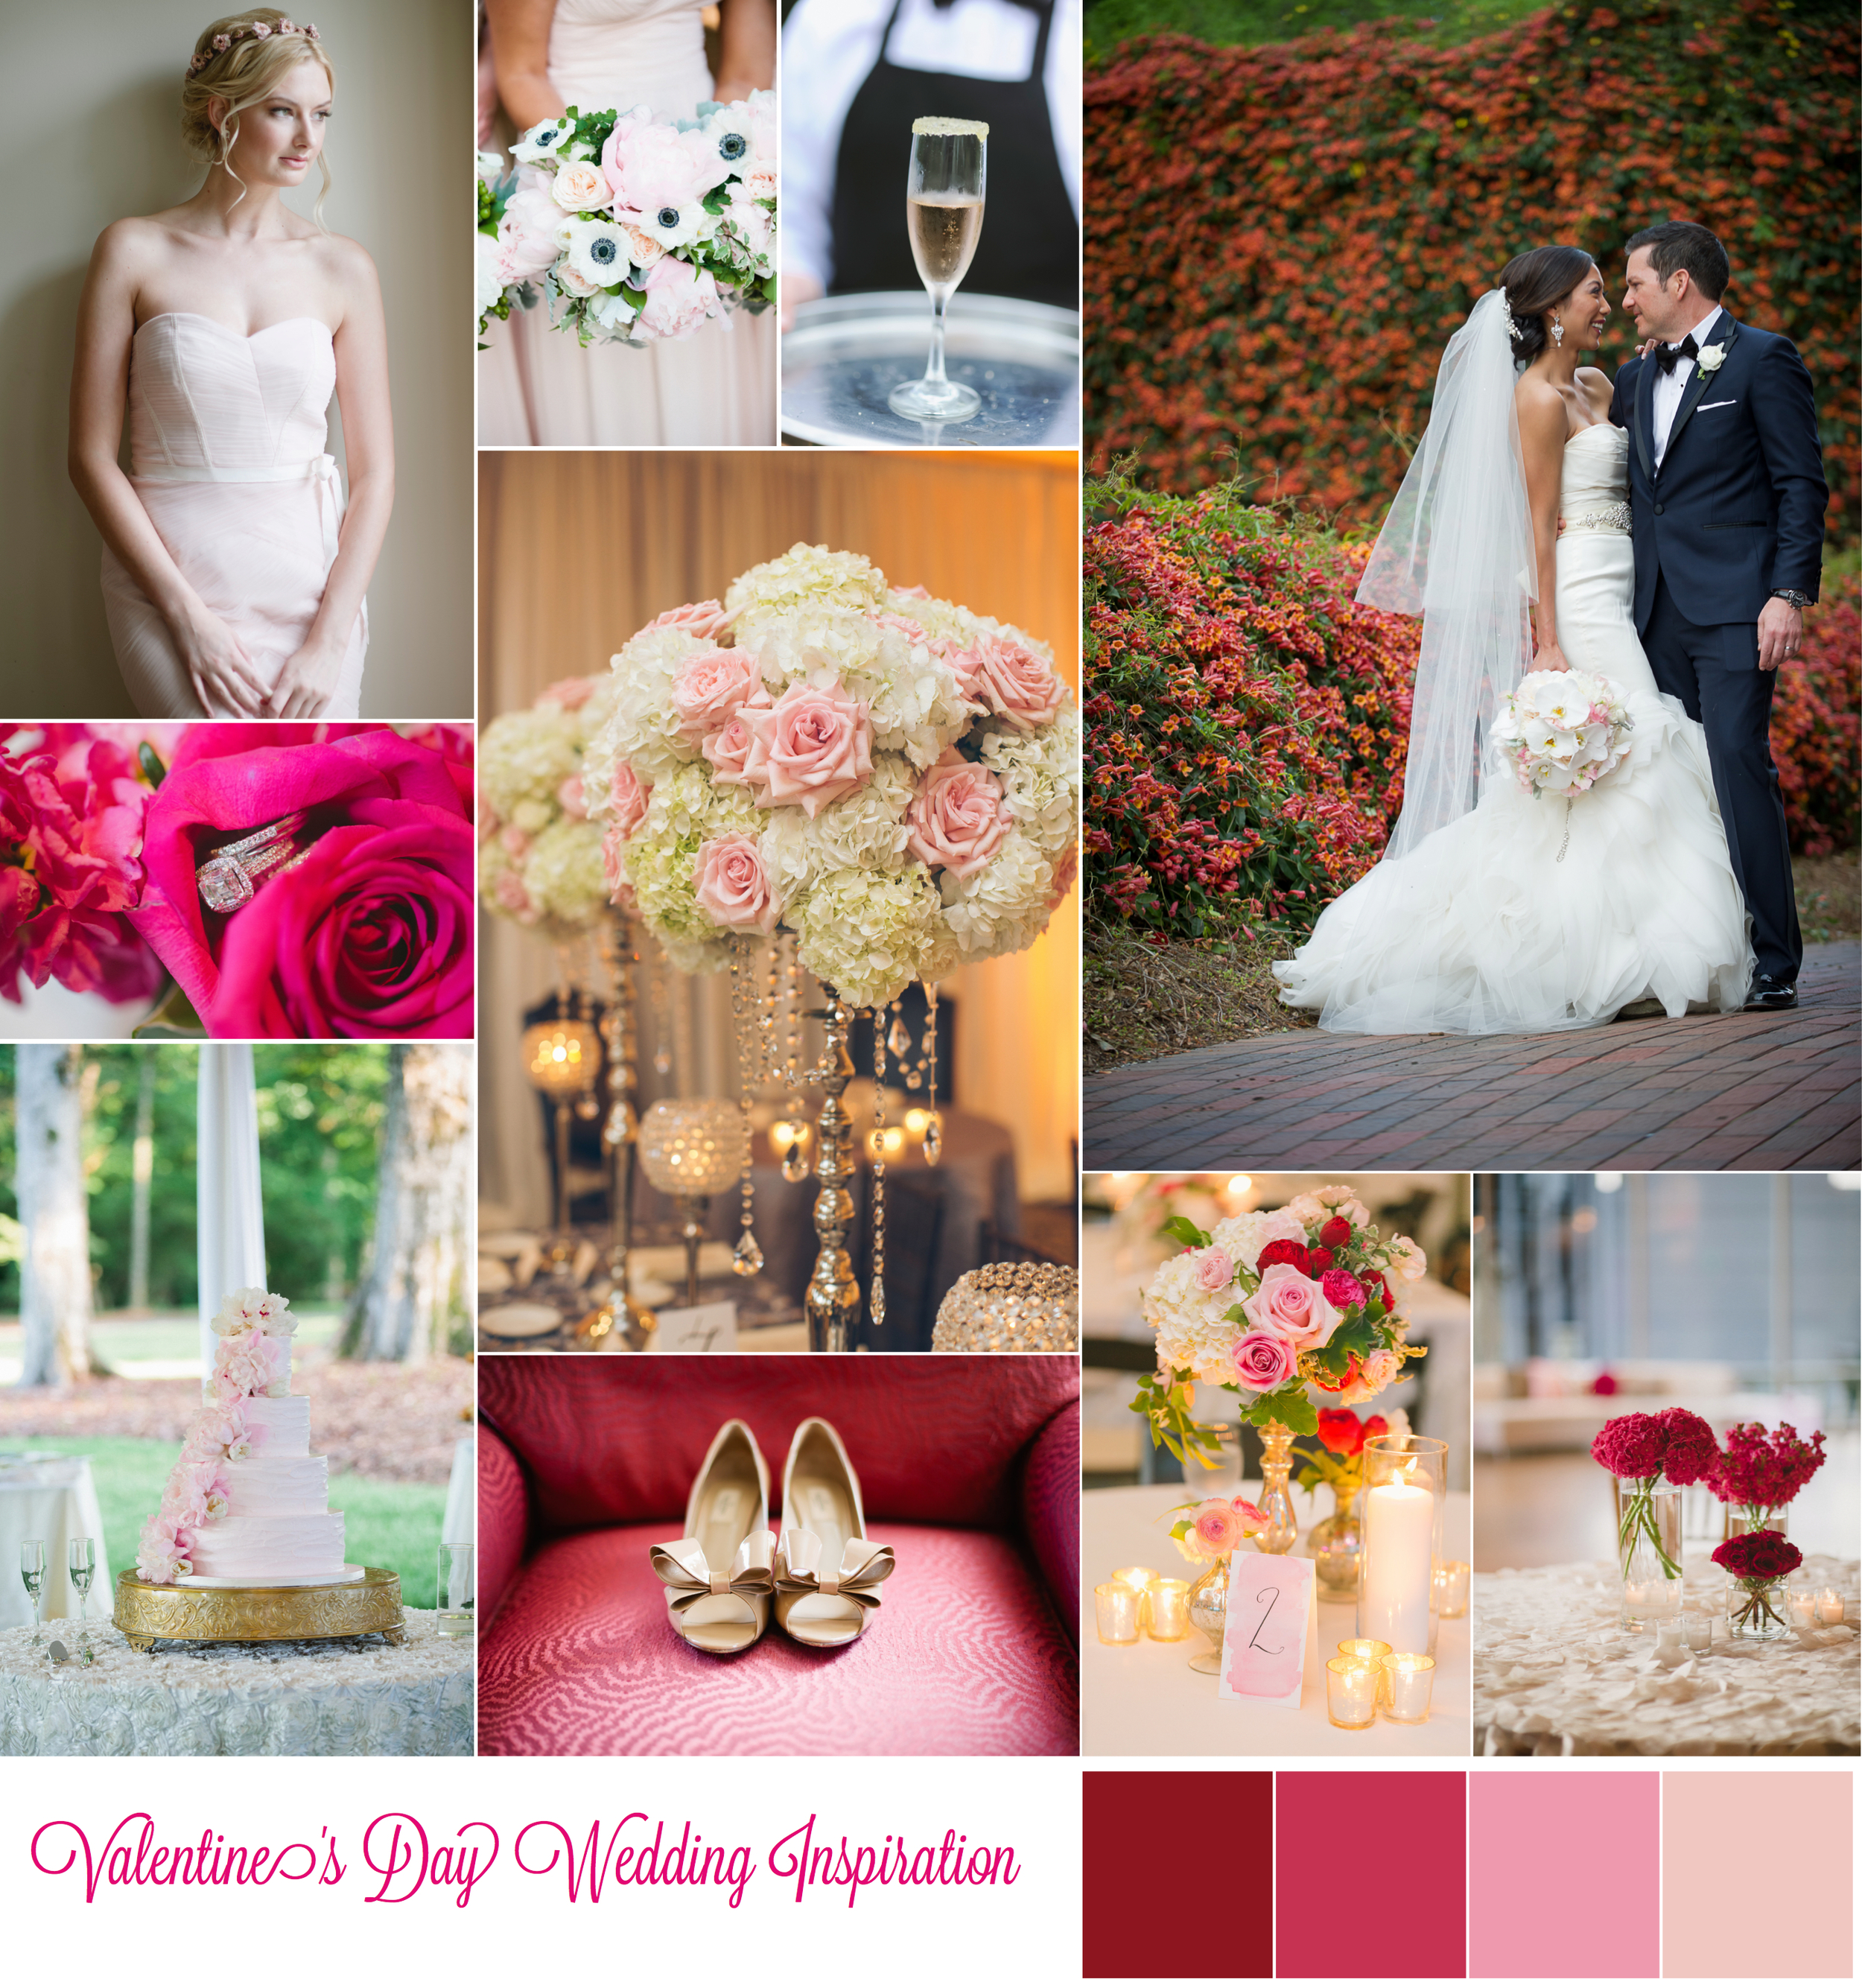 Valentines-Wedding-Inspiration-The-Graceful-Host.jpg